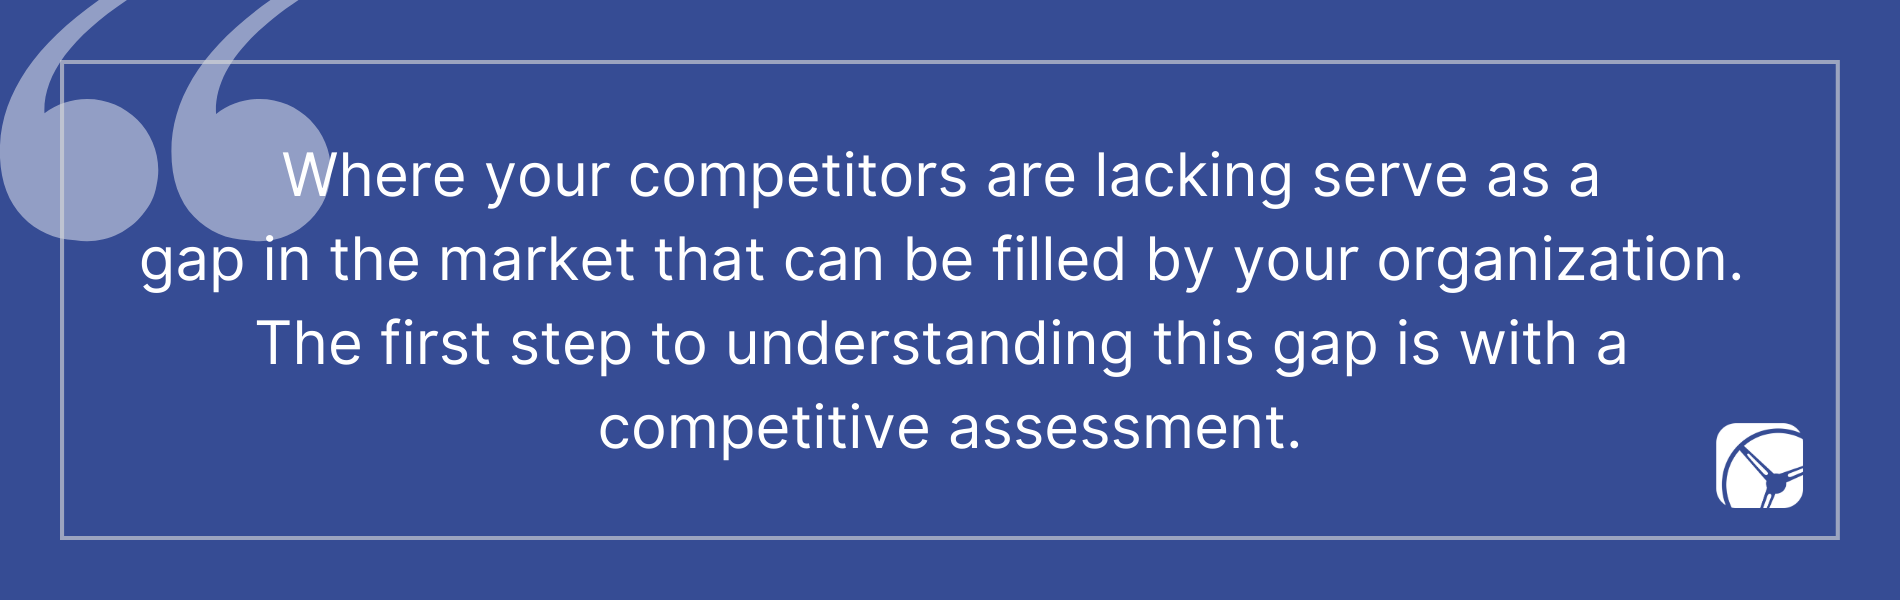 Where your competitors are lacking serve as a gap in the market that can be filled by your organization. The first step to understanding this gap is with a competitive assessment.